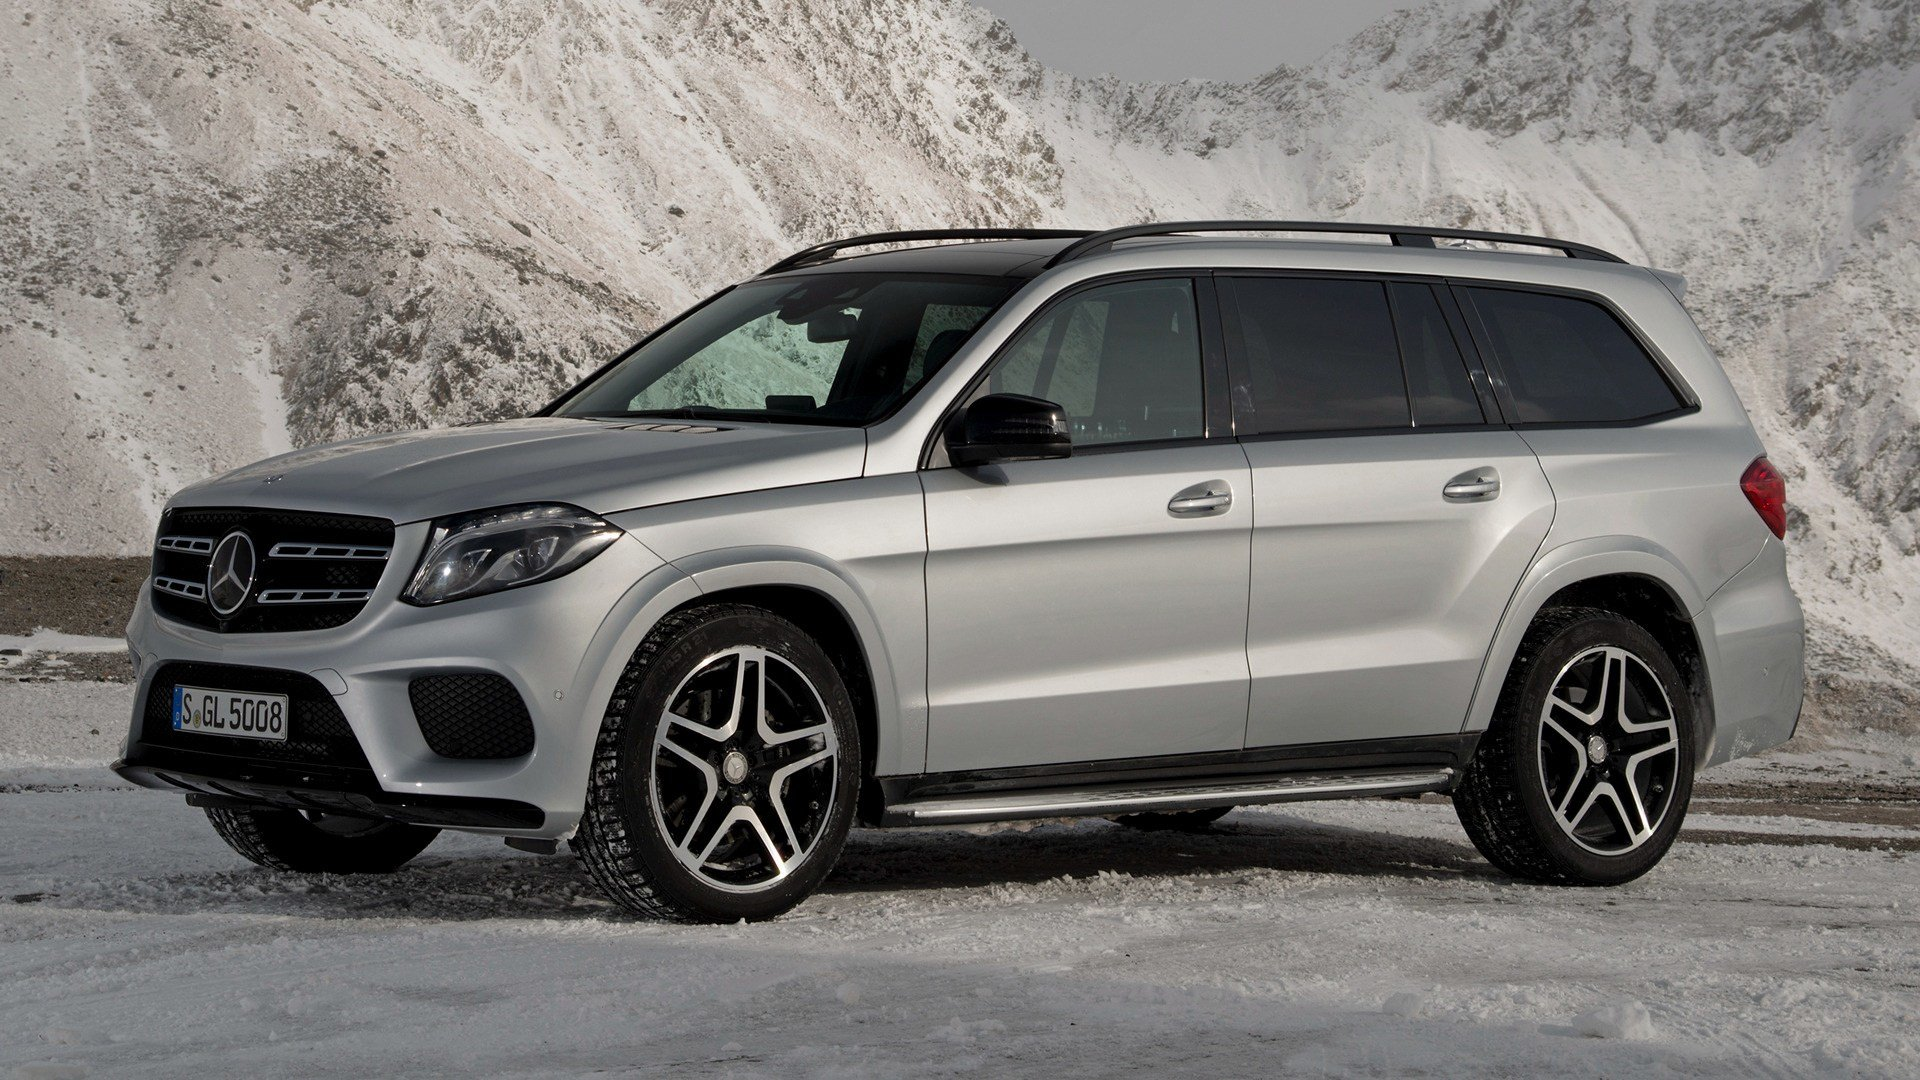 Latest 2016 Mercedes Benz Gls Class Amg Line Wallpapers And Hd Free Download